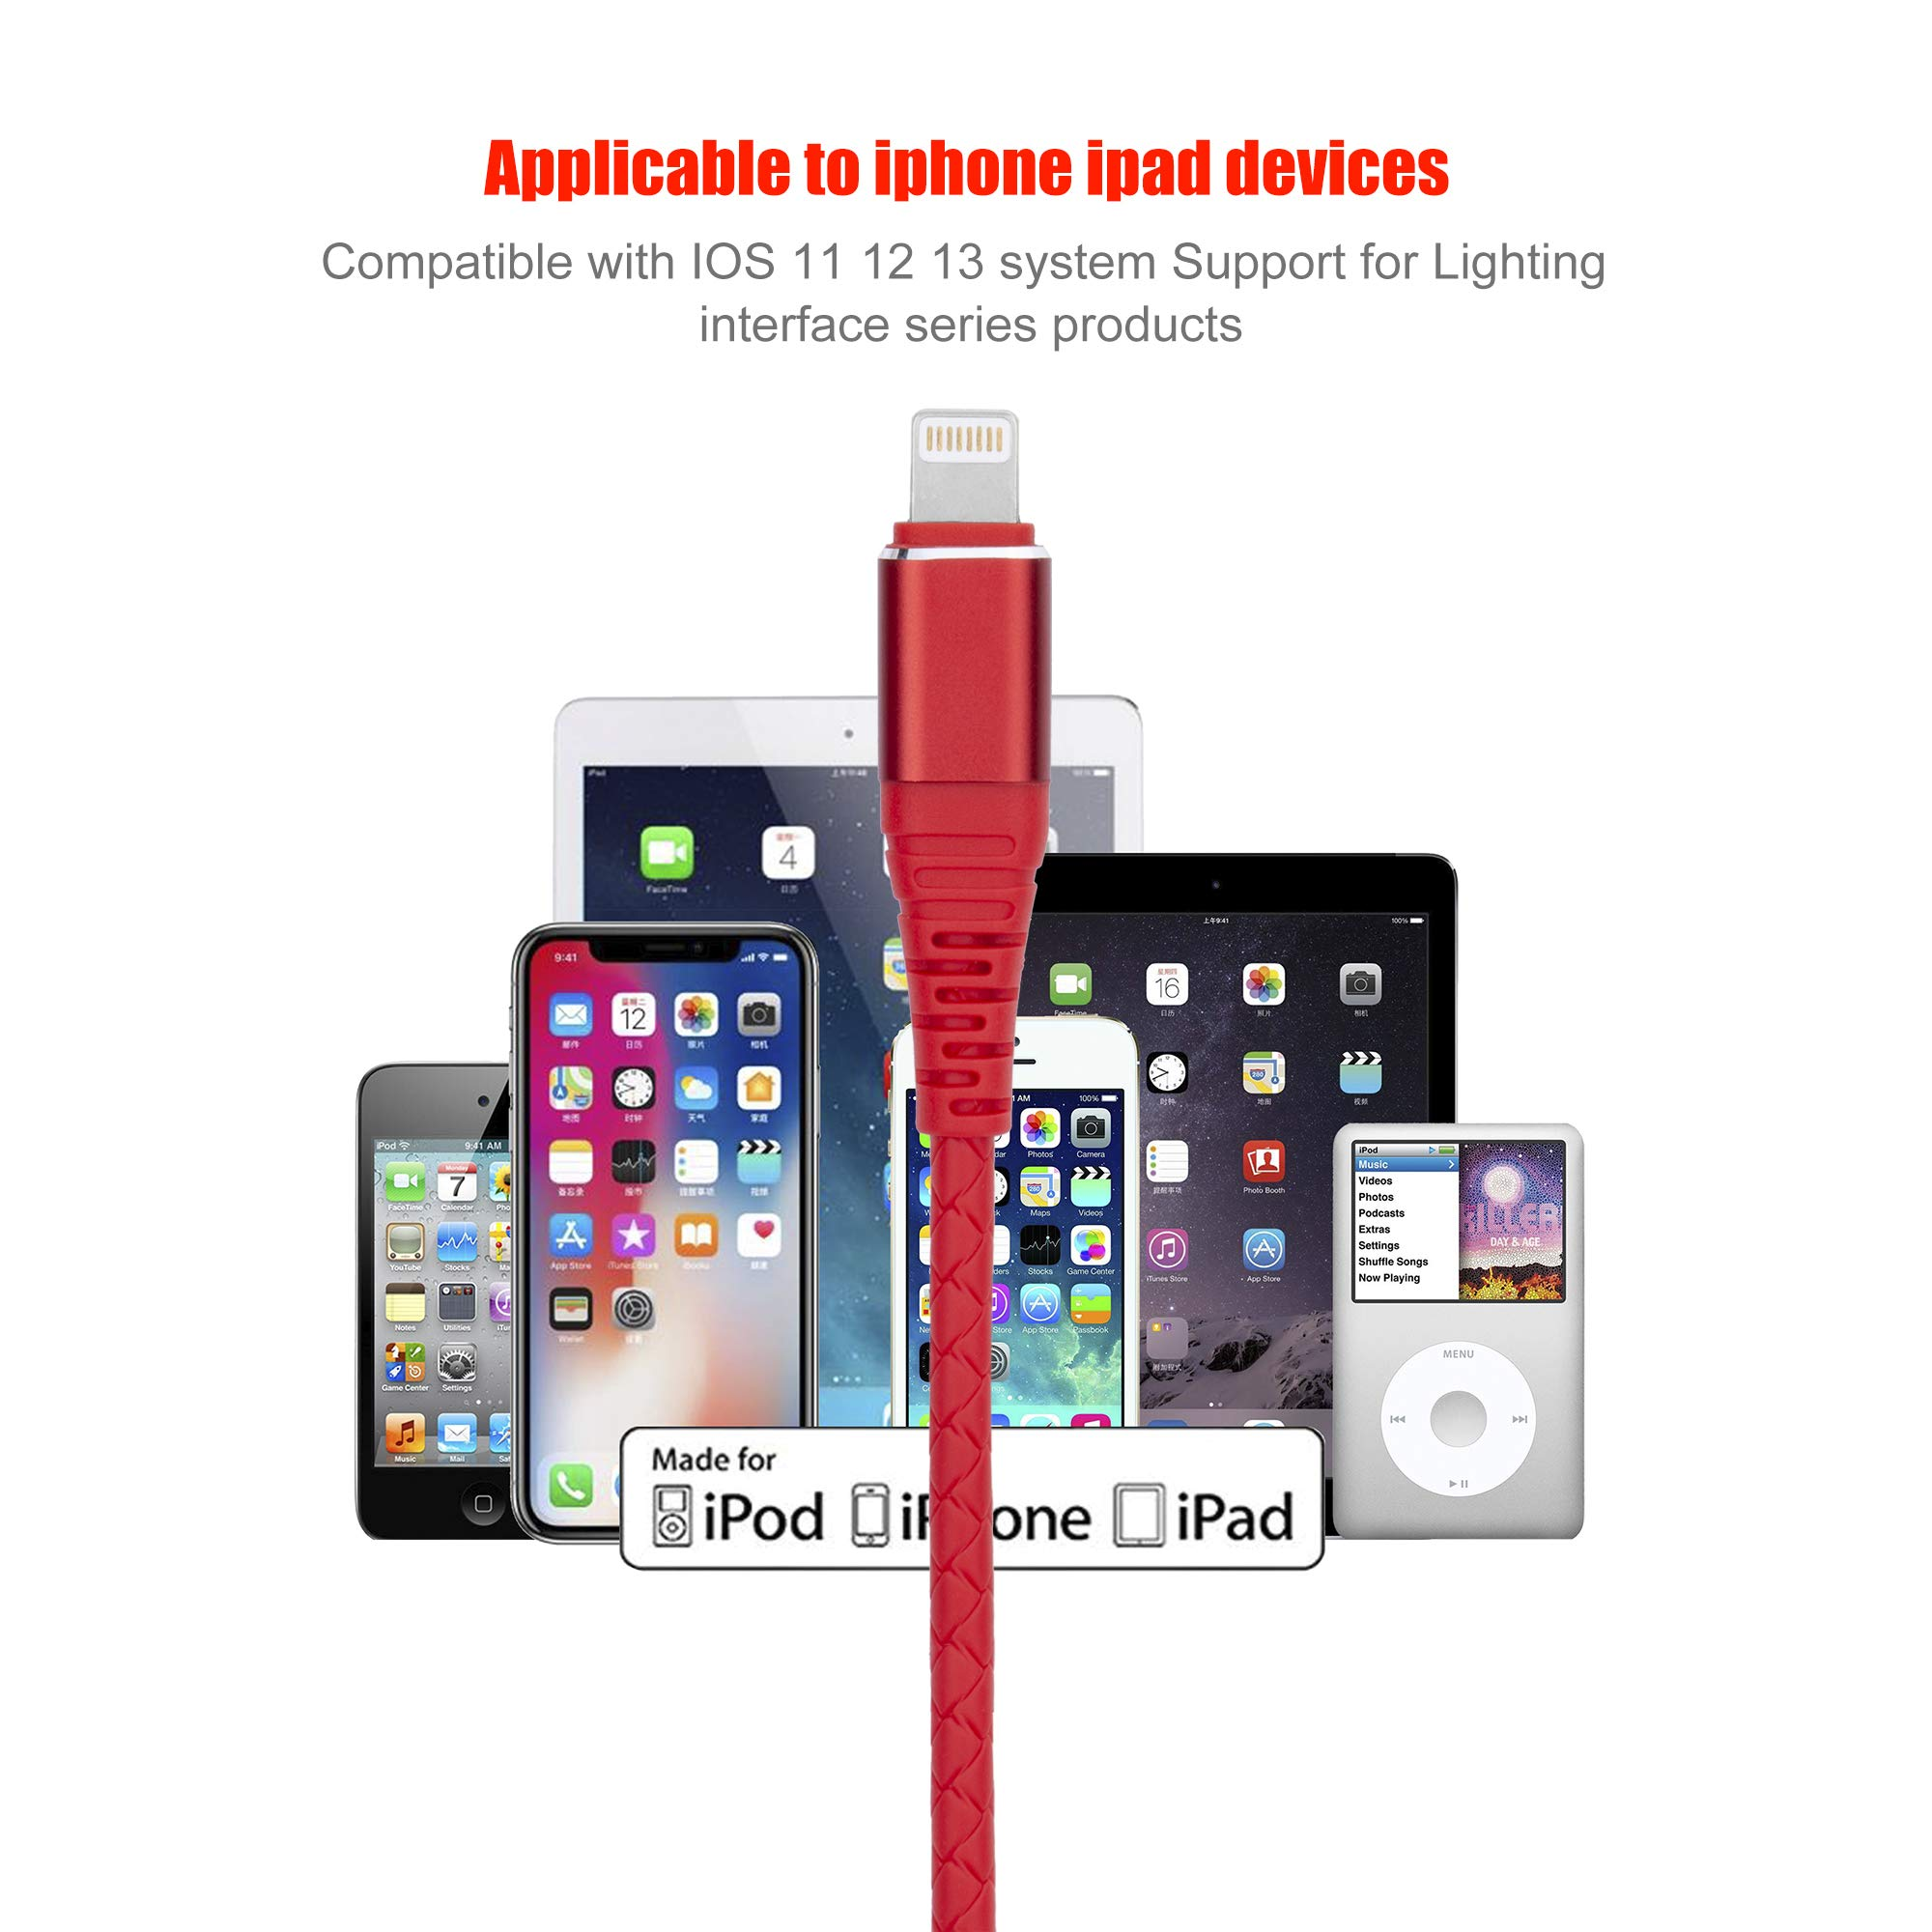 SMALLElectric Lightning Cable 5Pack 6ft,iPhone Charger Cord 6 Foot iPhone Charging Cable Cord Compatible with iPhone X/8/8 Plus/7/7 Plus/6/6s Plus/5s/5(Red) by SMALLElectric (Image #5)